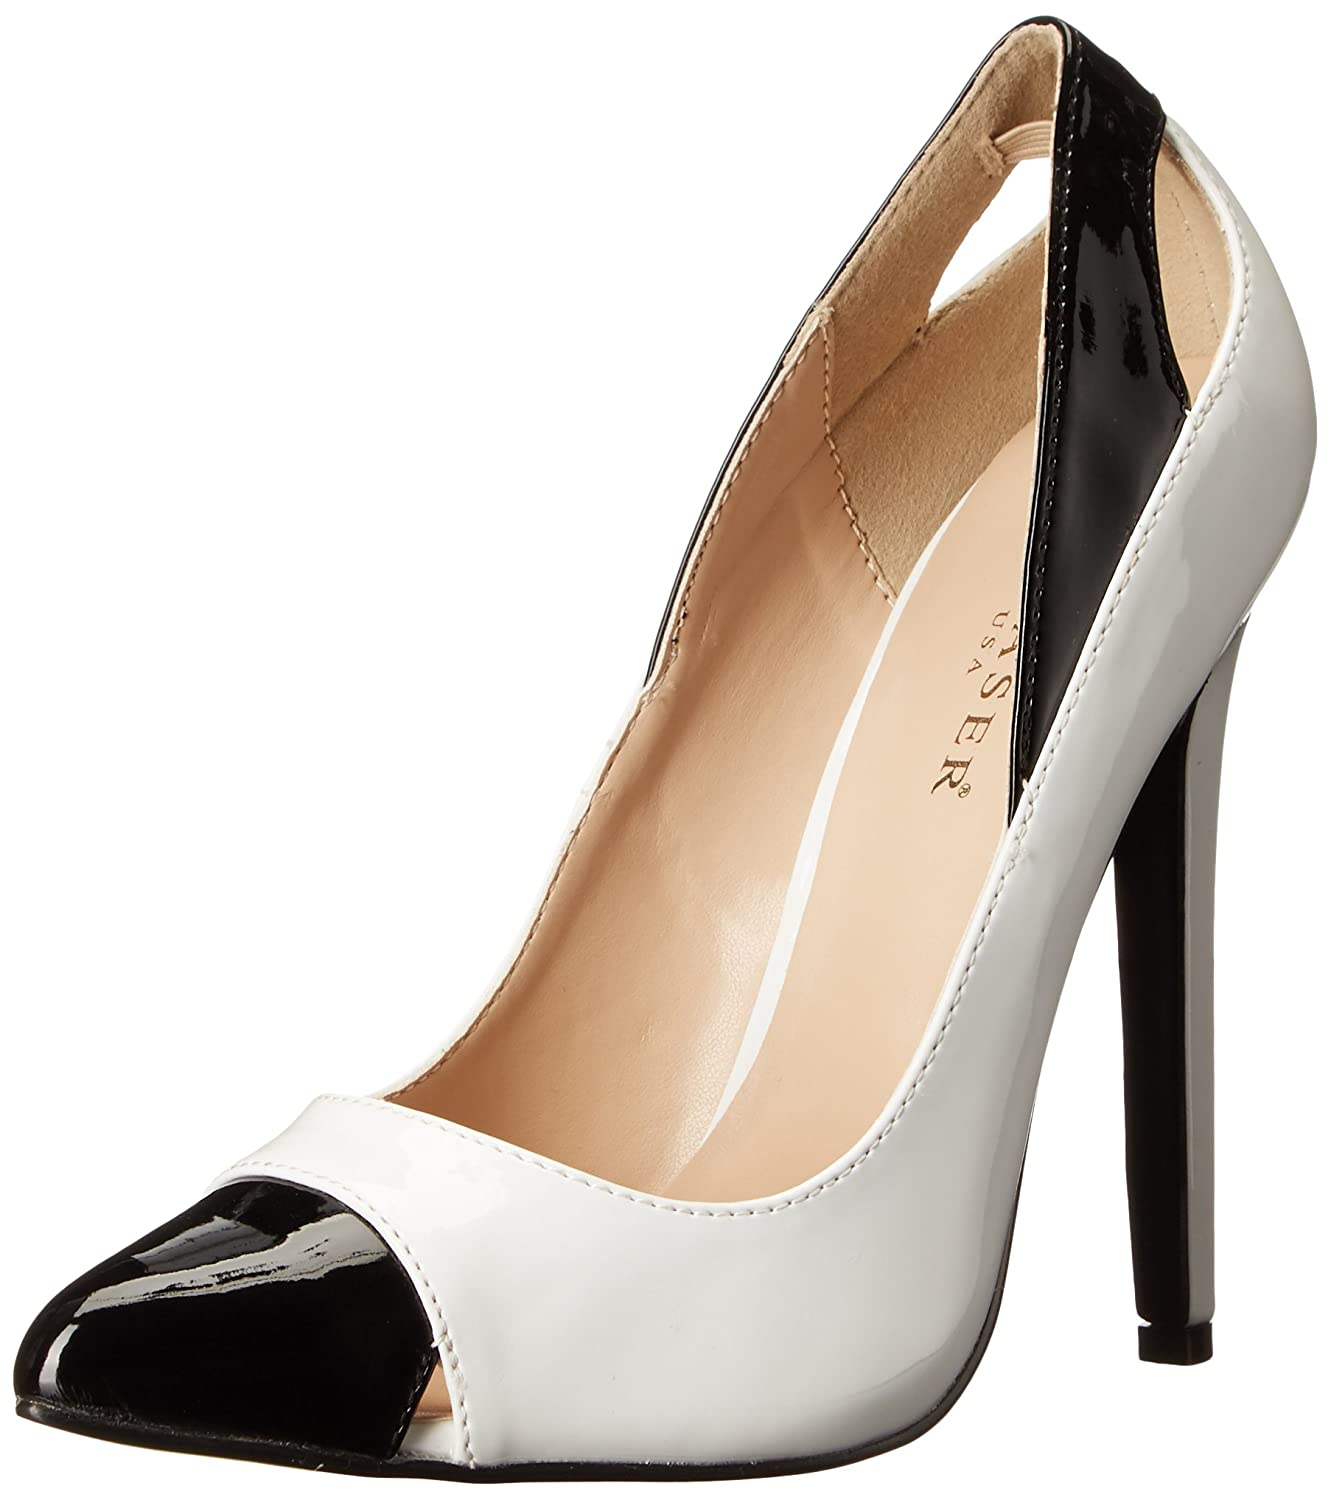 Pleaser Women's SEXY22/W-B Dress Pump B00MH2EVNG 14 B(M) US|White/Black Patent